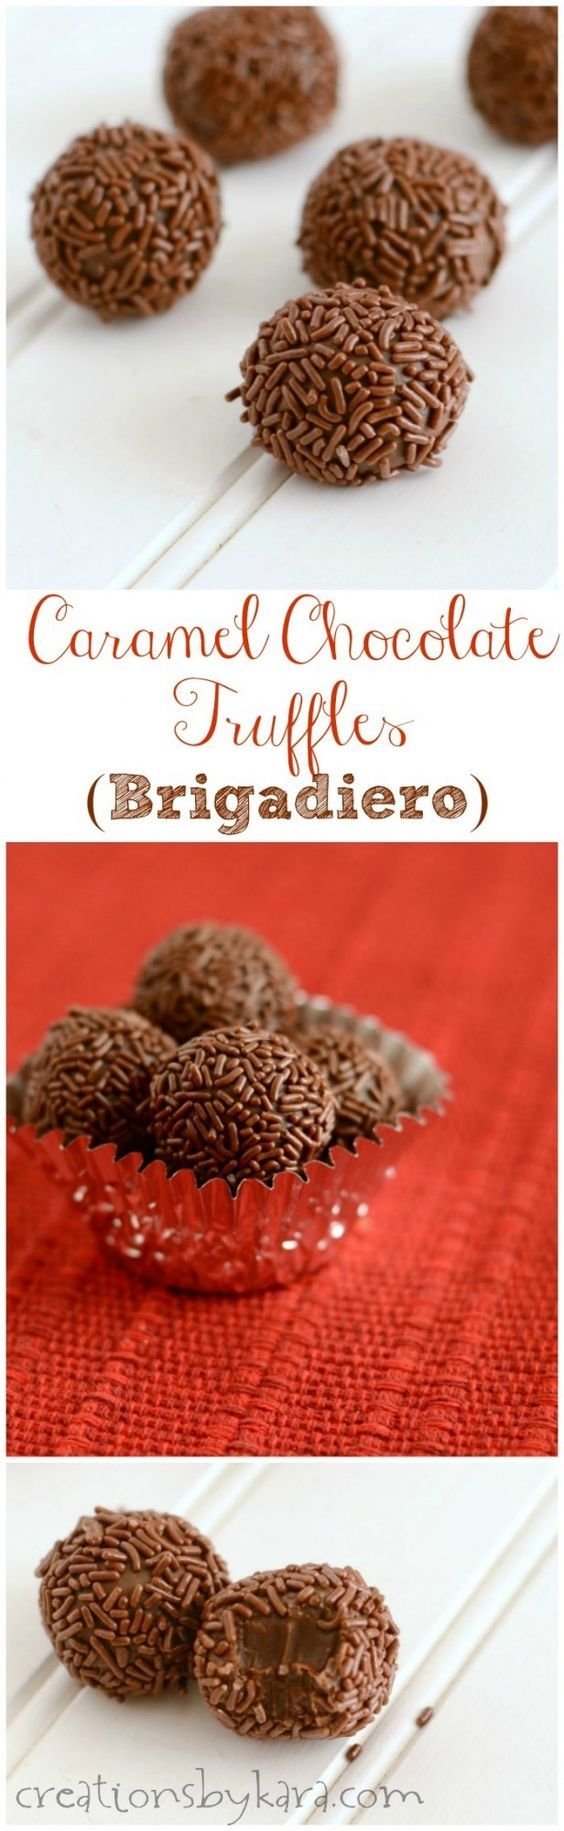 These 4 ingredient Caramel Chocolate Truffles are a traditional Brazilian candy called Brigadiero. They are easy to make, but hard to stop eating!: